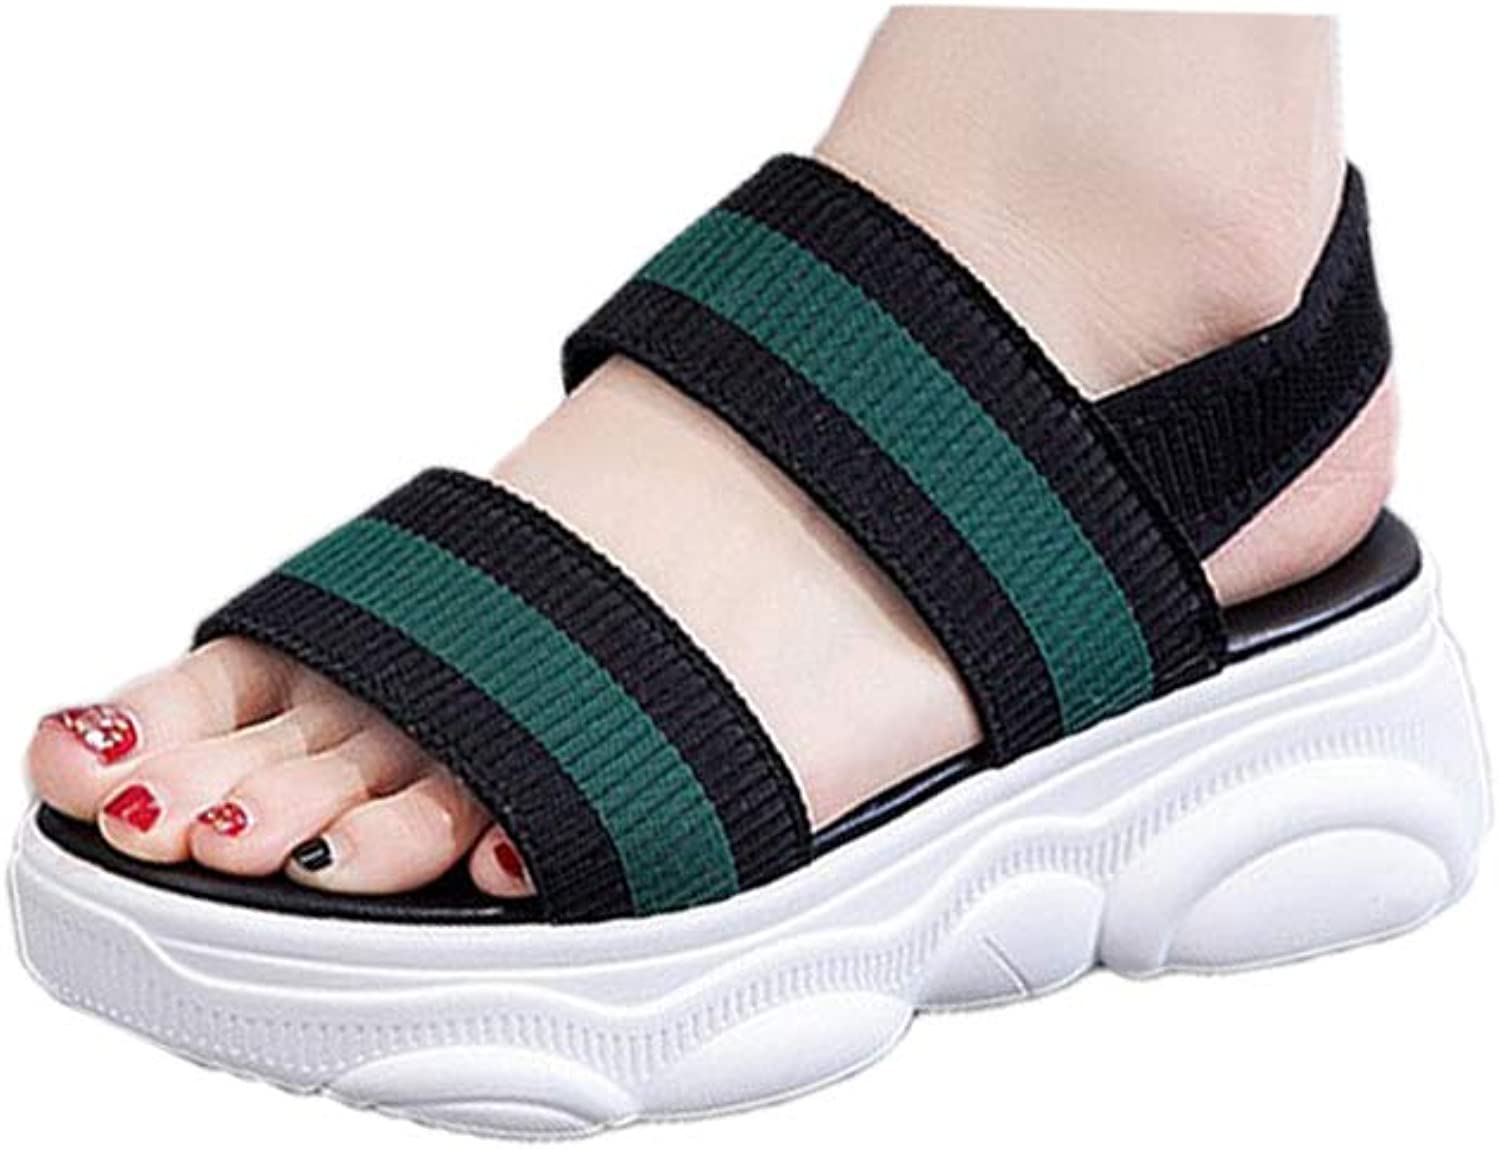 DBQWTY Summer Flat-Soled Ladies Comfortable Walking Classic Cloth-Faced Sandals with Slope-Heeled Sandals